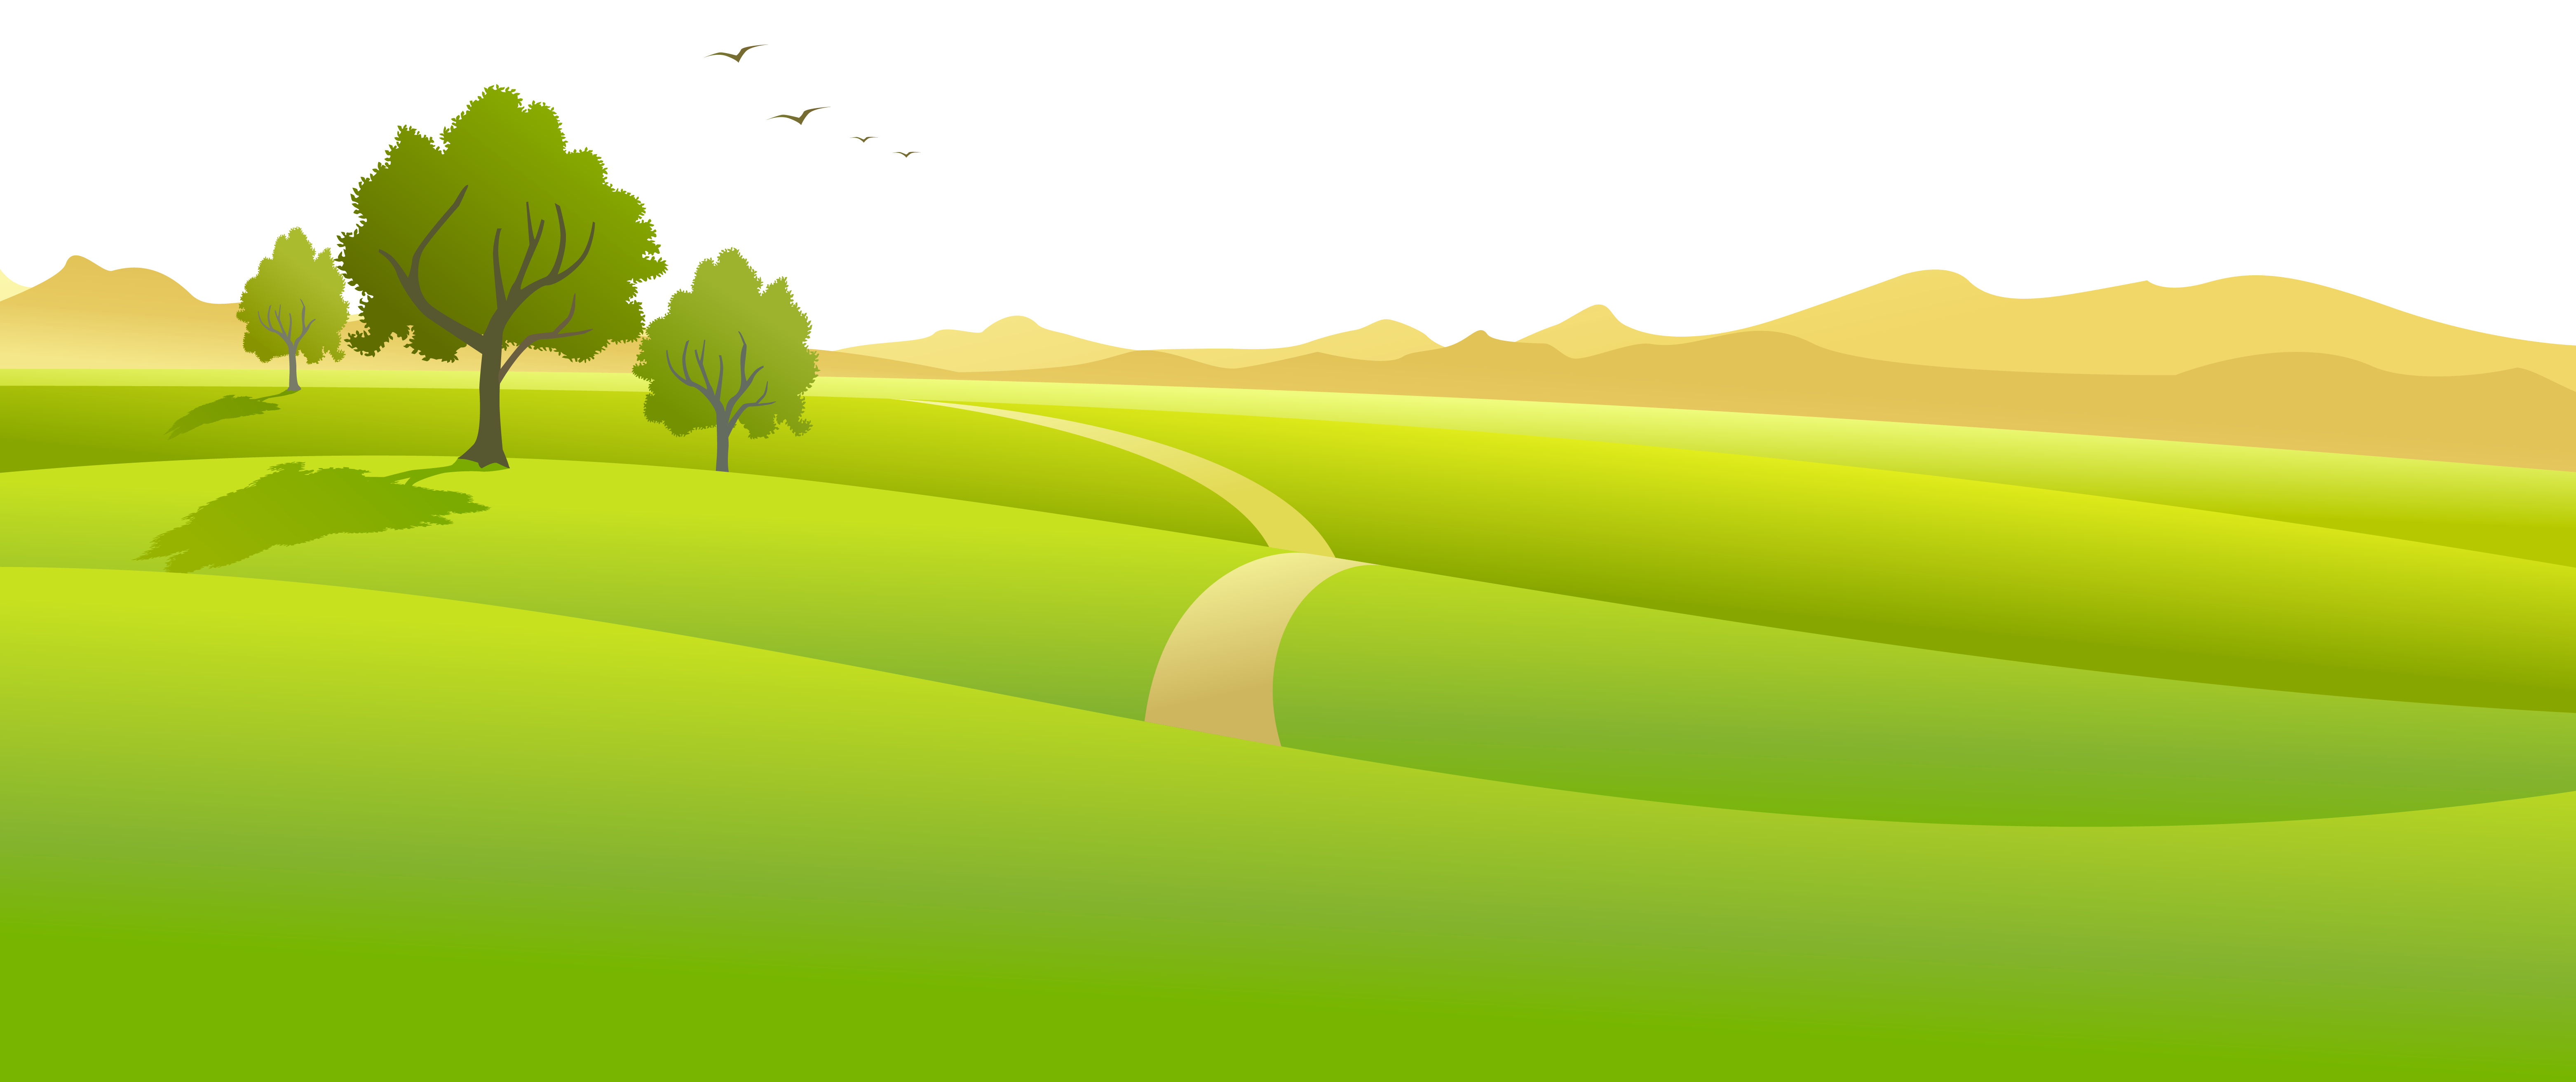 See clipart tree grass #7